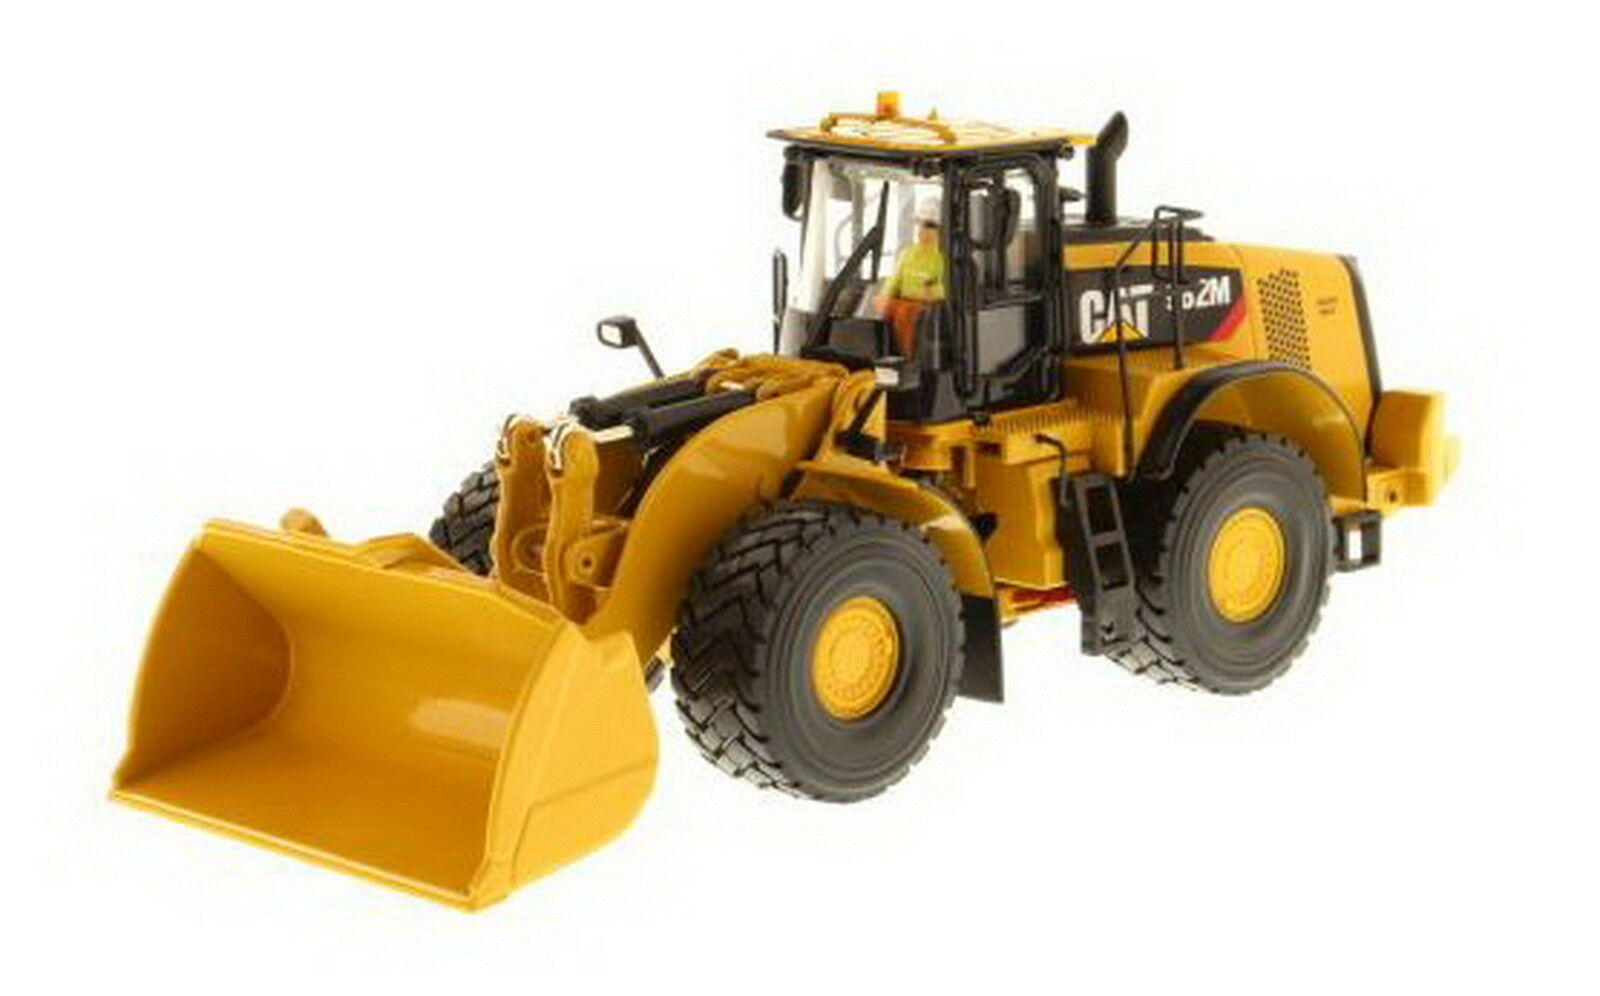 1 50 DM CATERPILLAR CAT 982 M Wheel Loader Diecast Model  85292